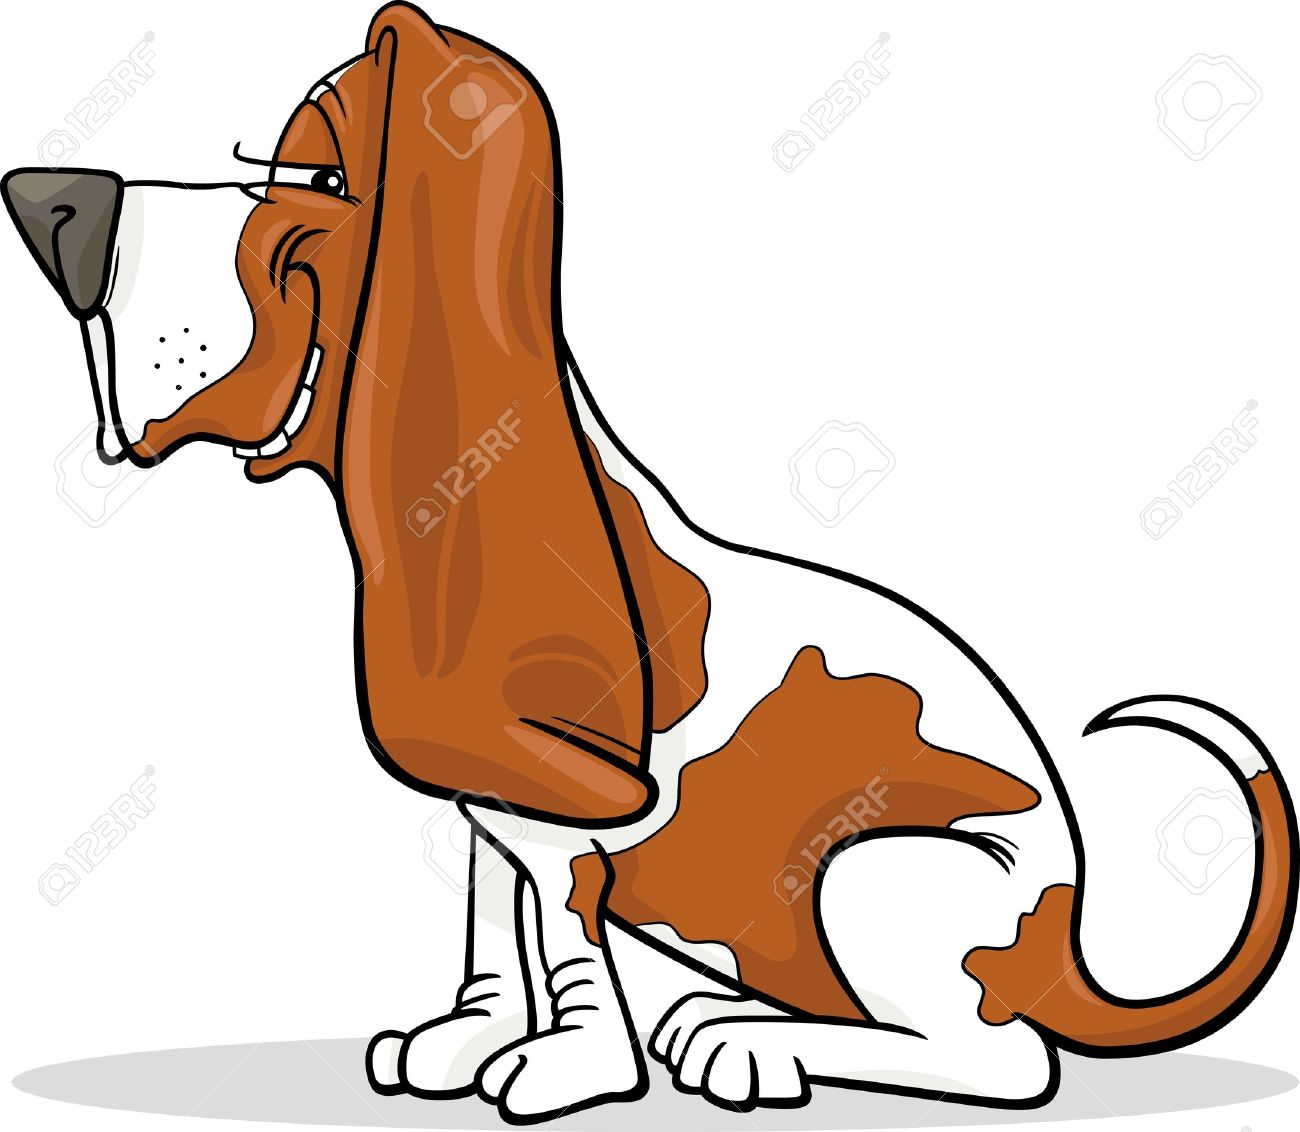 Basset Hound clipart #2, Download drawings